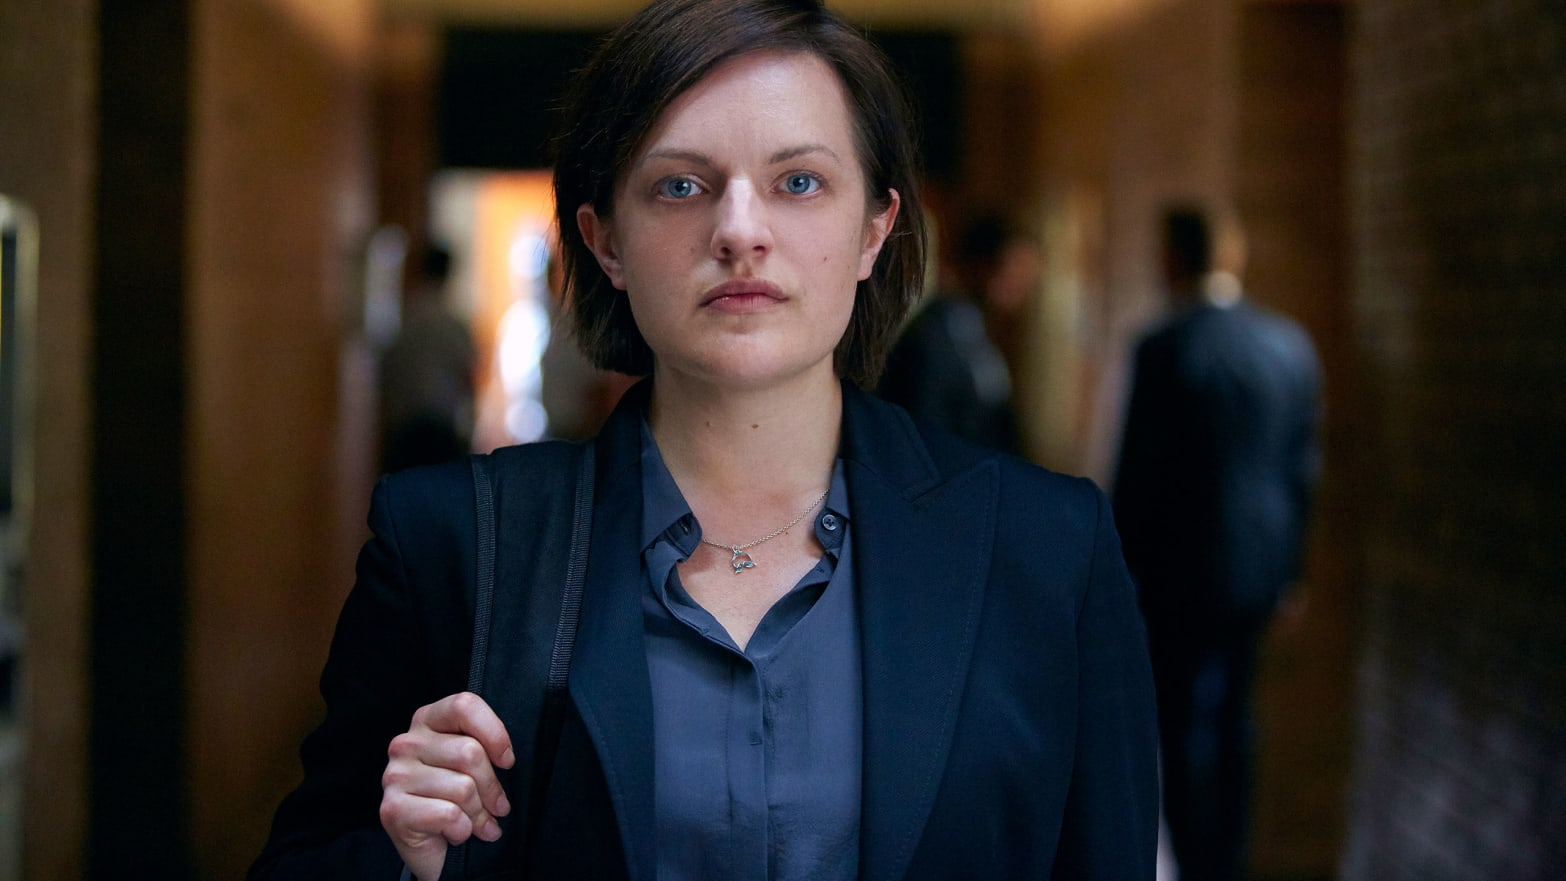 Talking with Emmy nominee Elizabeth Moss about 'The Handmaid's Tale,' the new season of 'Top of the Lake,' and Oprah.